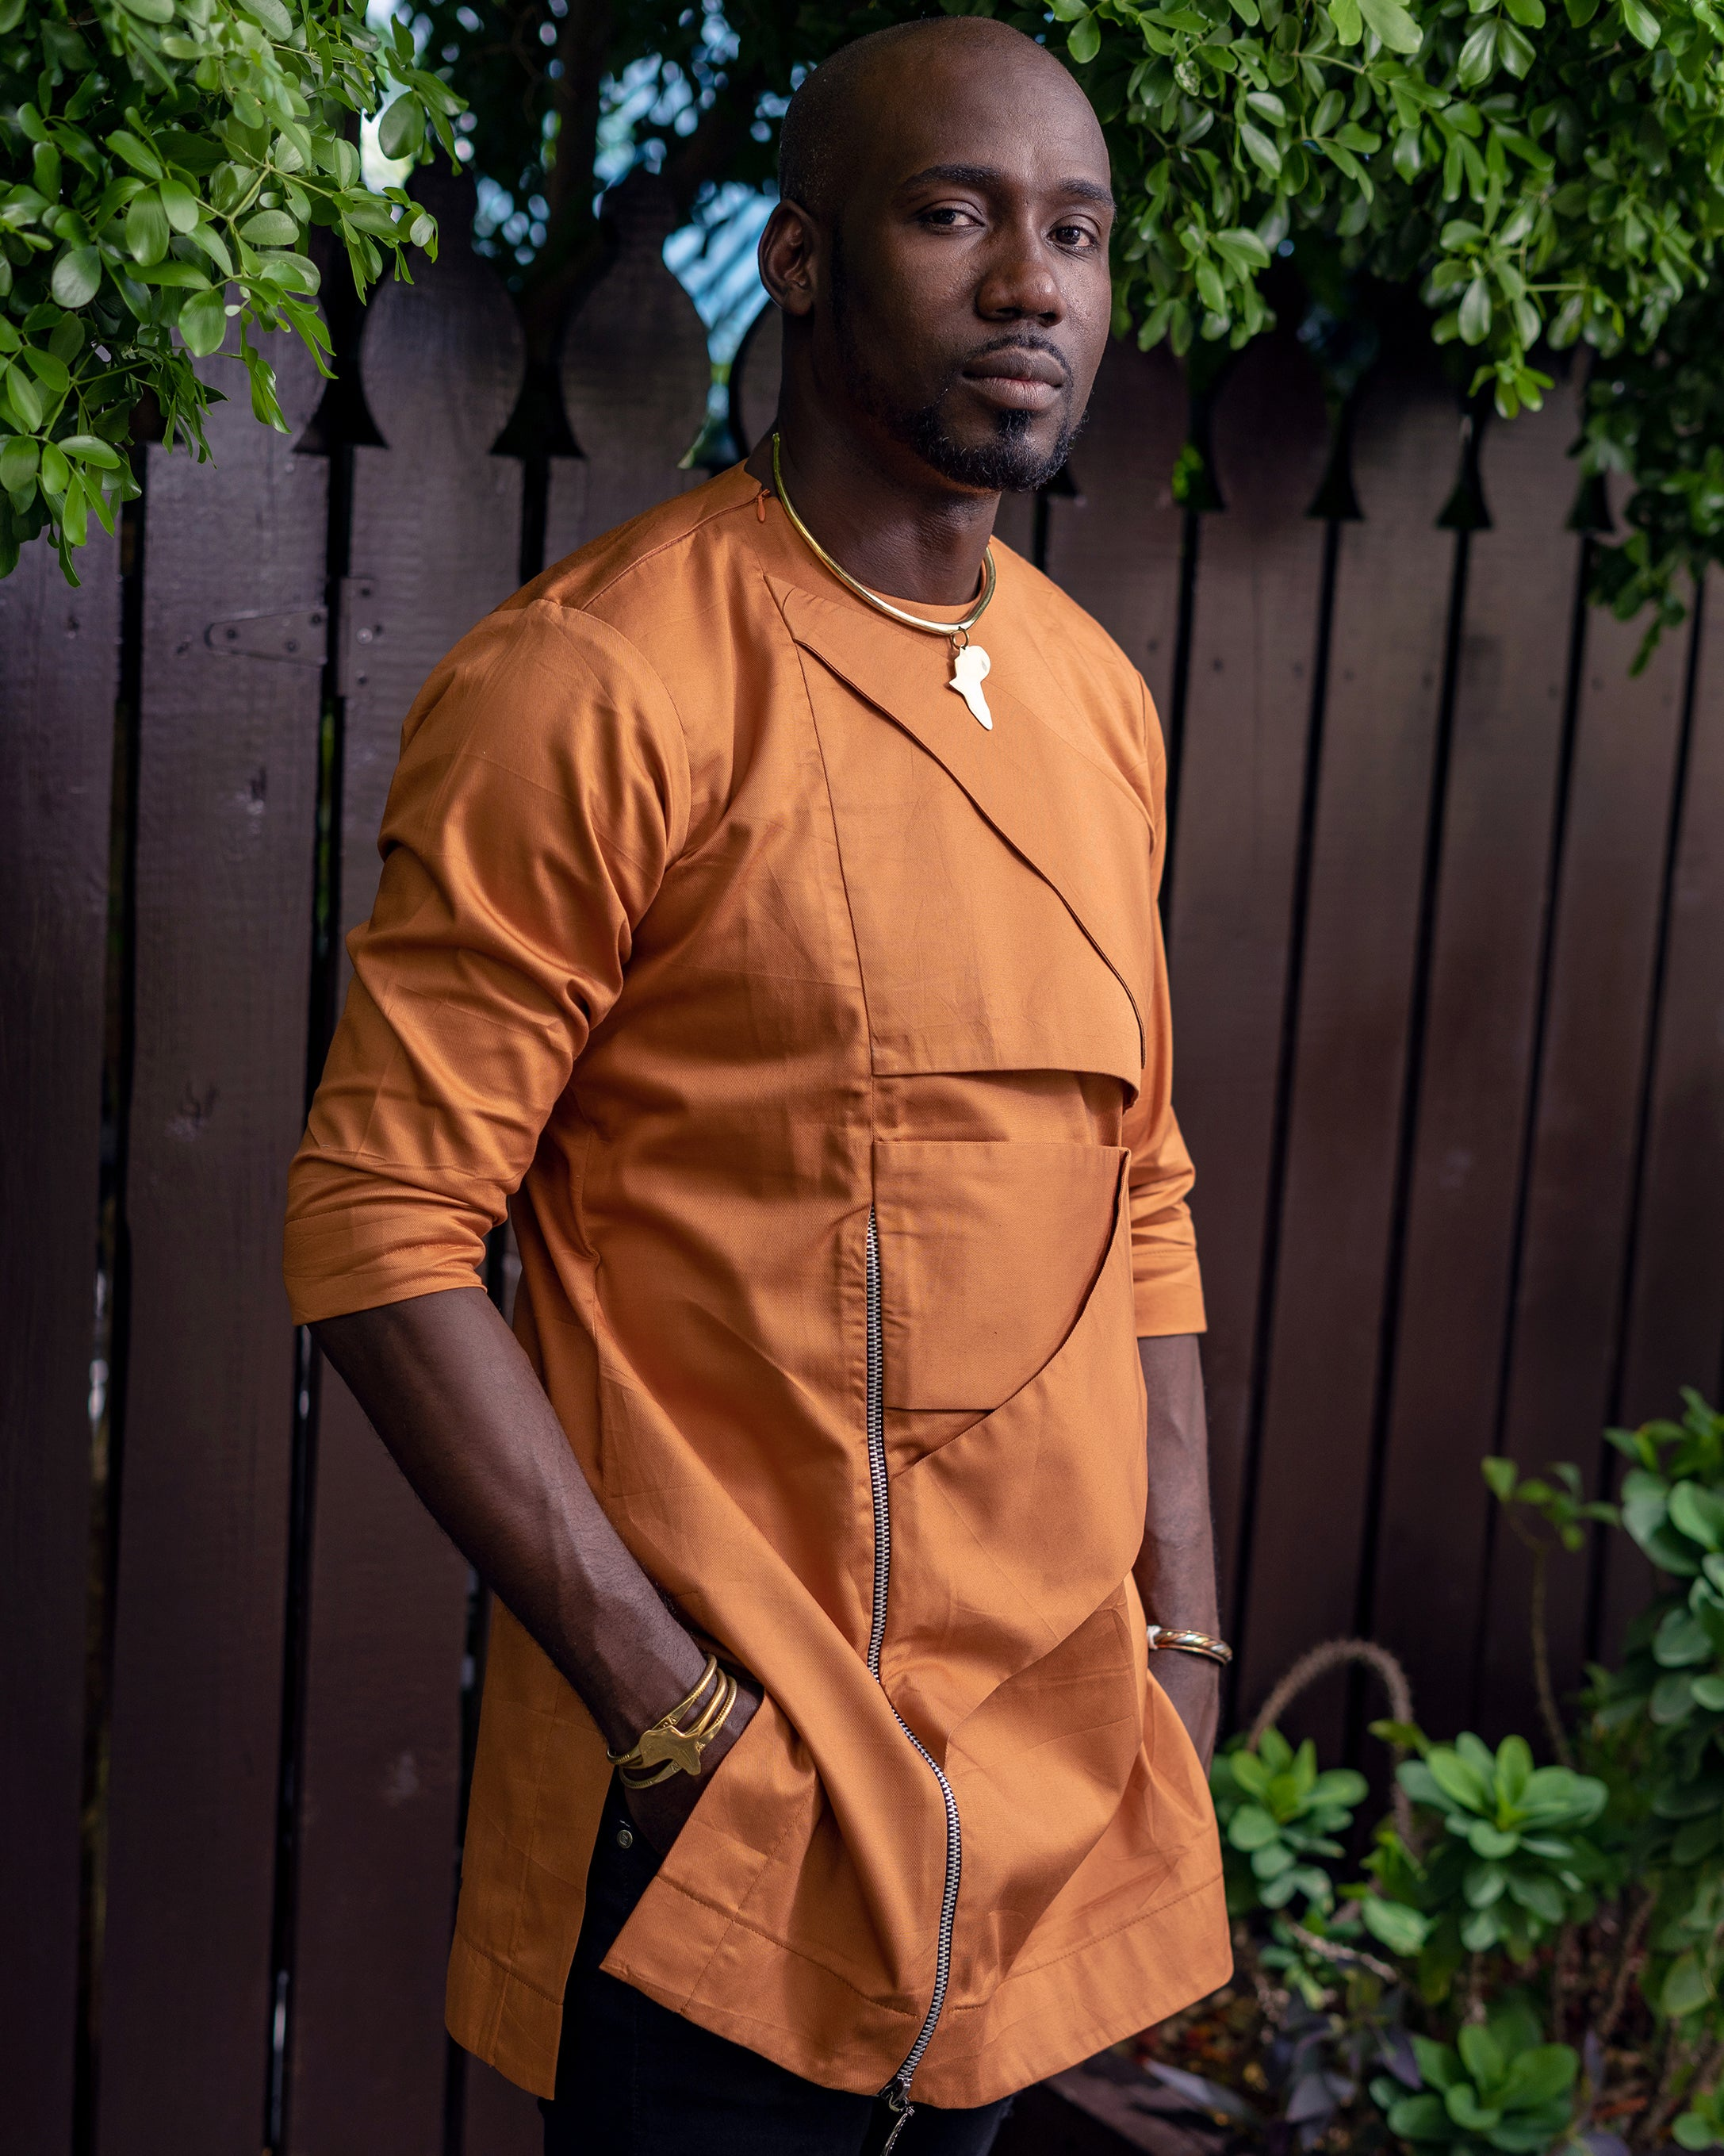 Orange shirt with wrap panel and zipper detailing